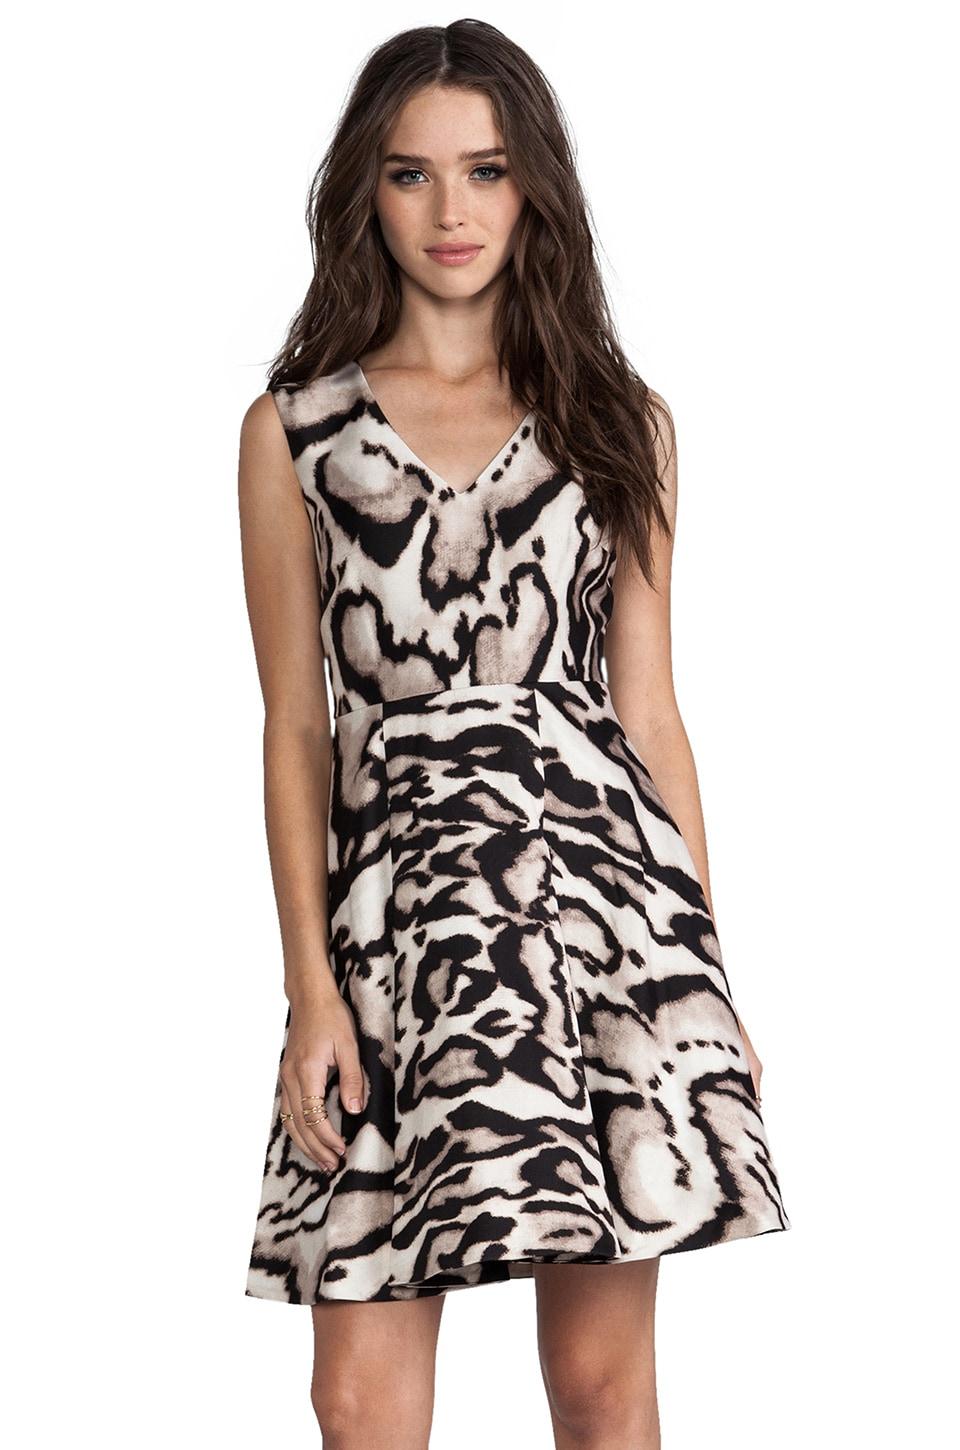 Diane von Furstenberg Renna Dress in Leopard Bark